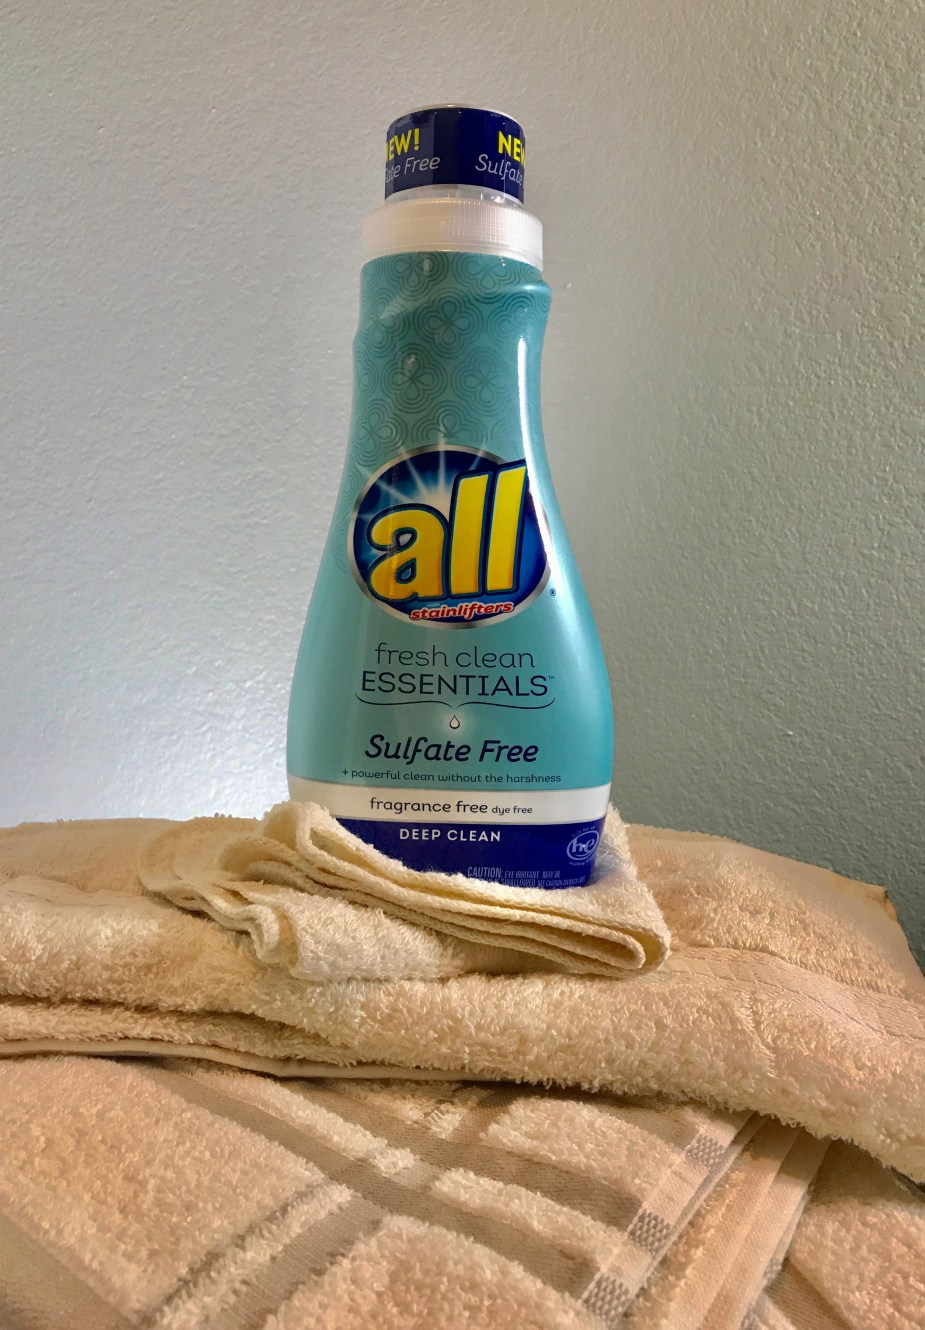 sulfate free all® fresh clean ESSENTIALS®